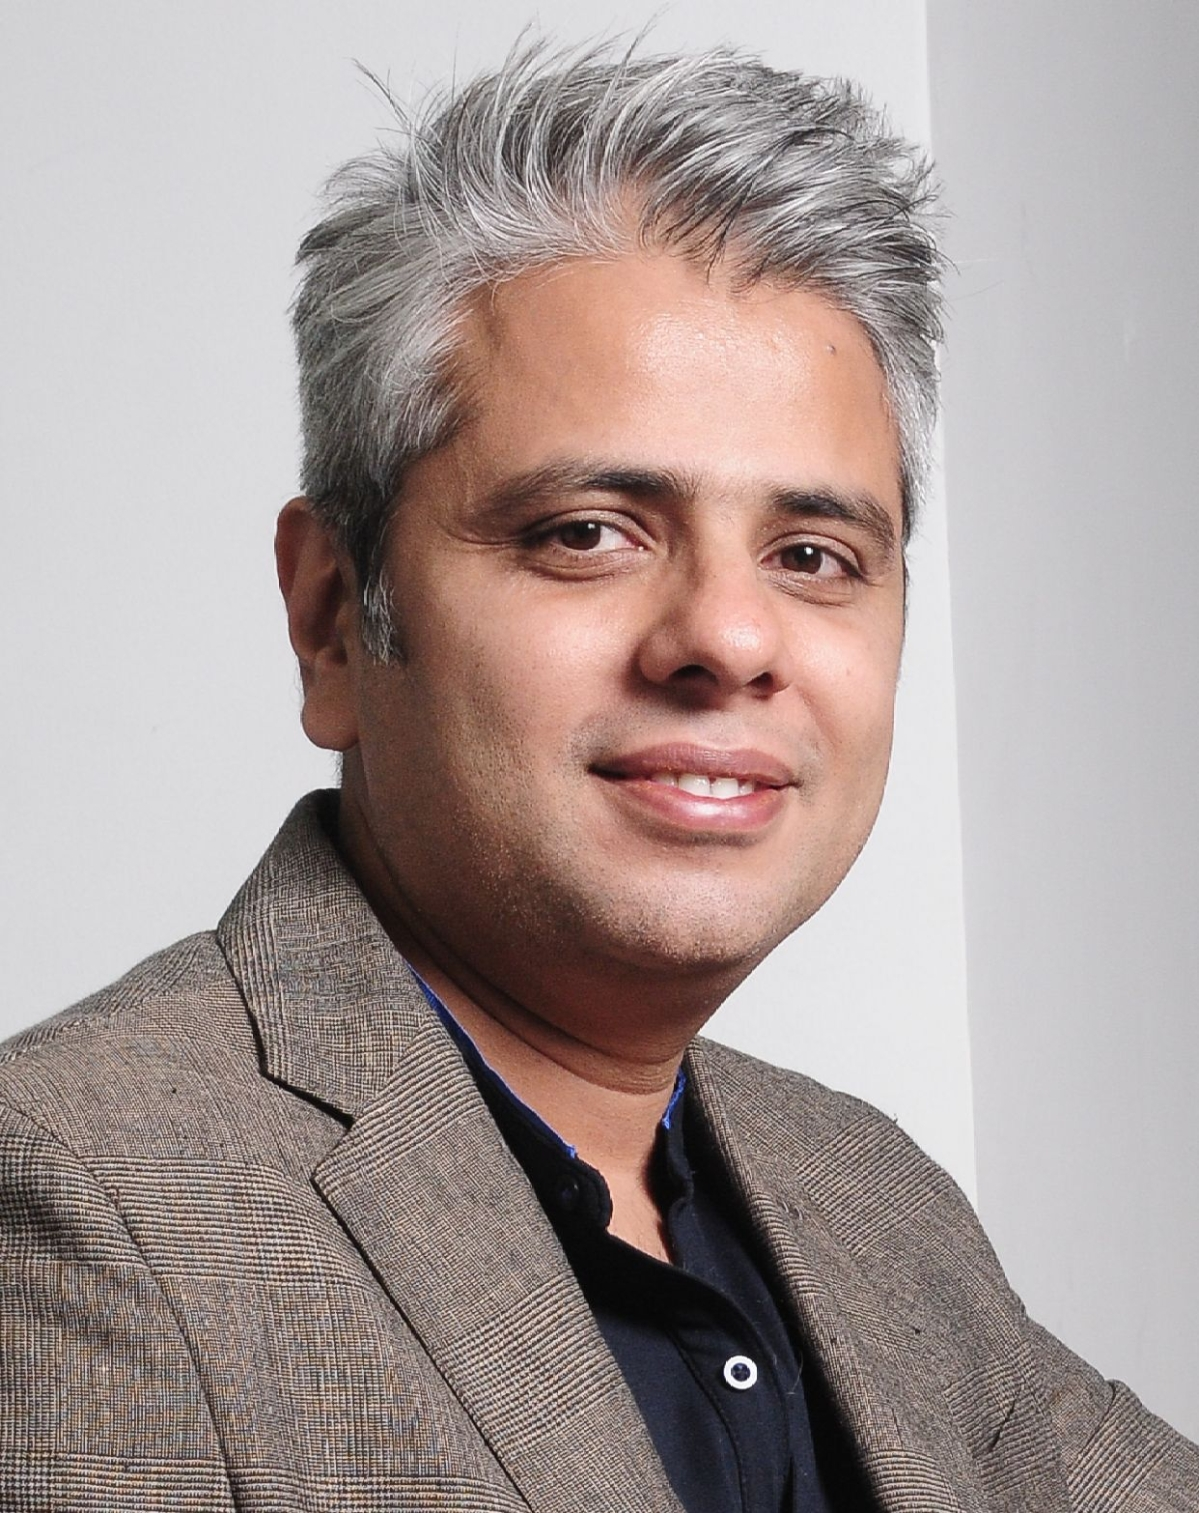 Shamsuddin Jasani, group managing director, Isobar South Asia